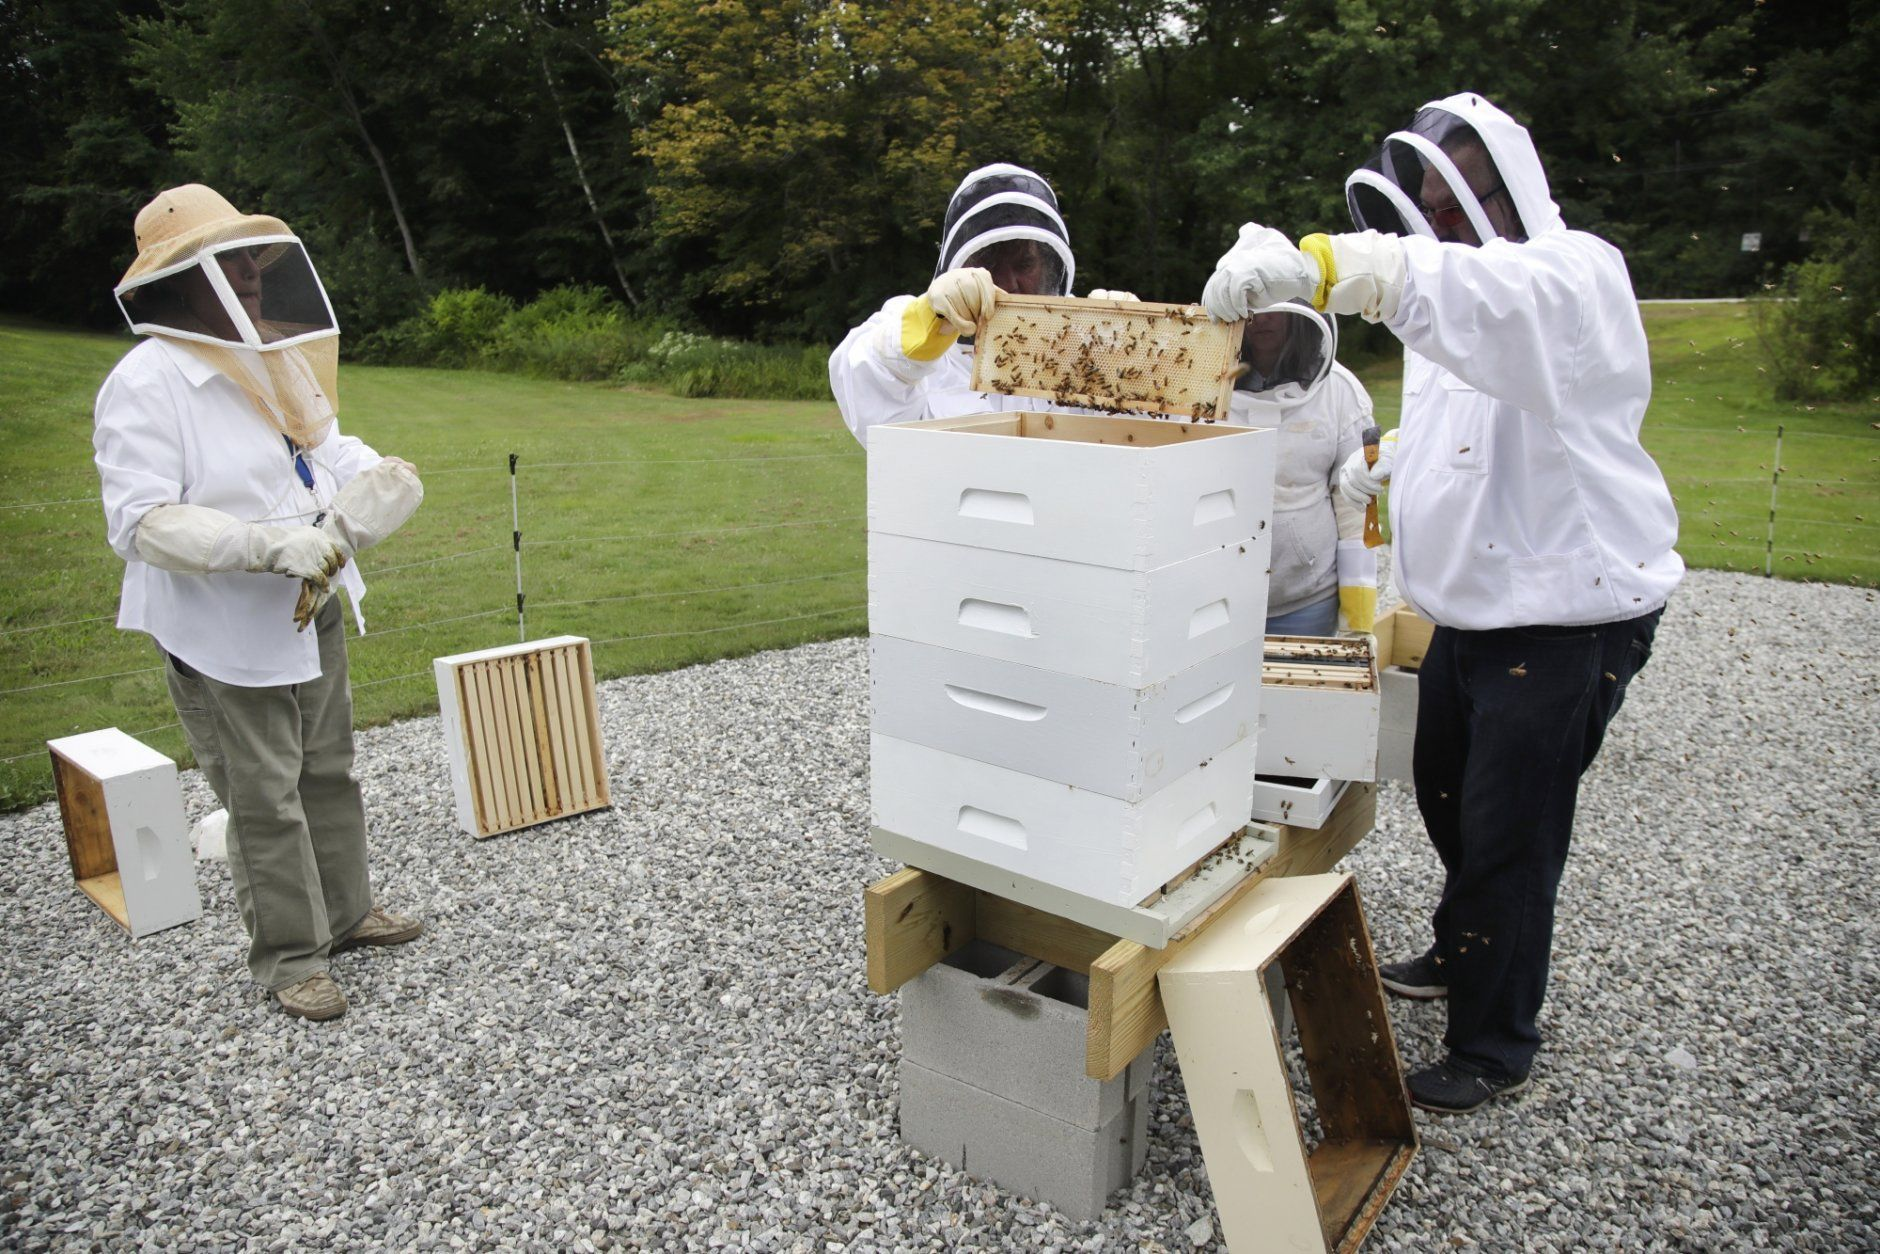 <p>In this Aug. 7, 2019 photo, instructor Karen Eaton, left, supervises beekeeping activities performed by veterans at the Veterans Affairs&#8217; beehives in Manchester, N.H. New Hampshire&#8217;s only veterans medical center is hoping its beekeeping program will help veterans deal with their trauma. A small but growing number of veterans around the country are turning to beekeeping as a potential treatment for anxiety, PTSD and other conditions. (AP Photo/Elise Amendola)</p>